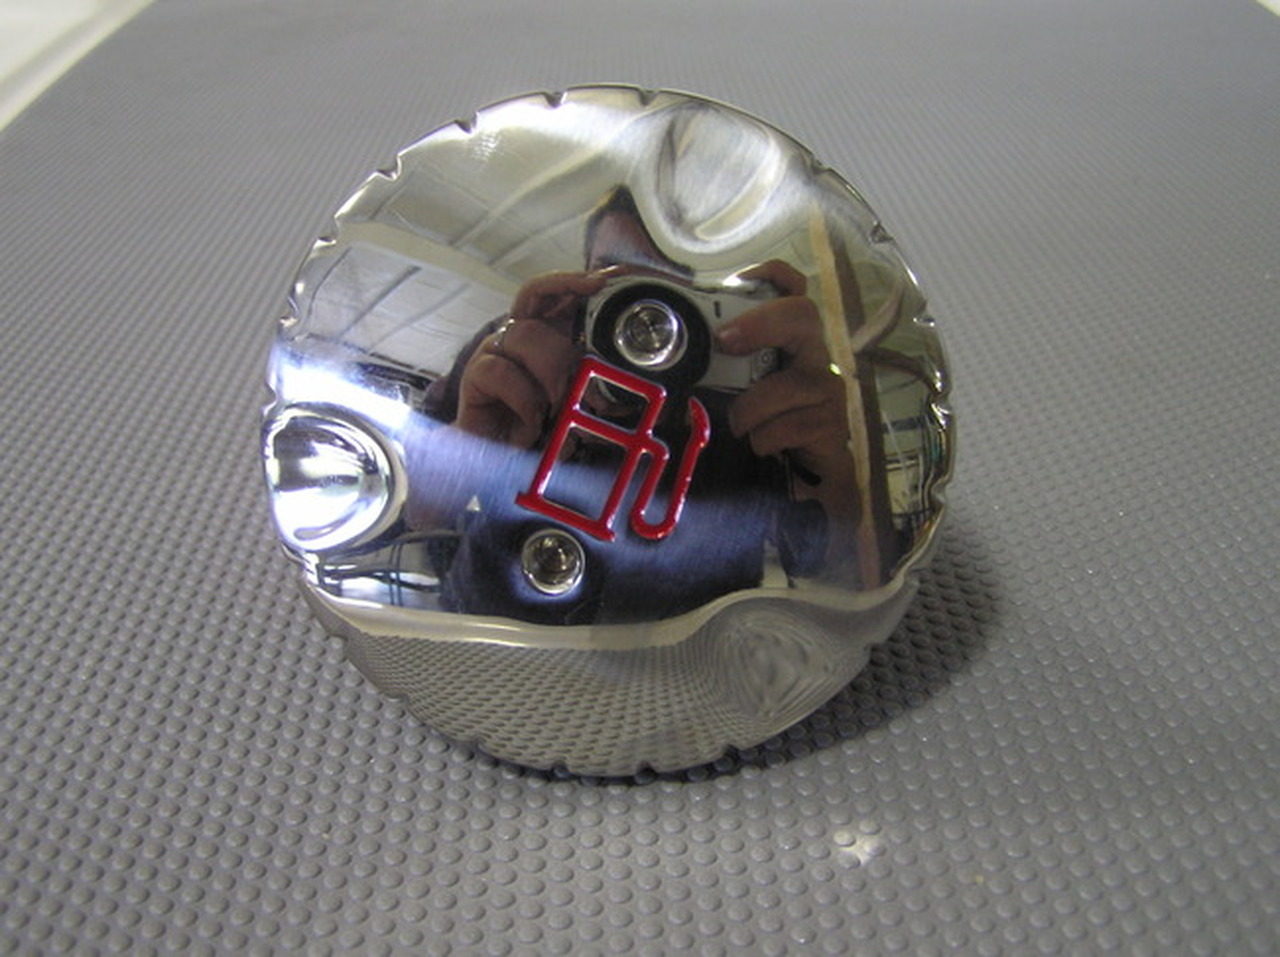 FUEL FILL CAP & FILL 27.00067 ** IN STOCK & READY TO SHIP!